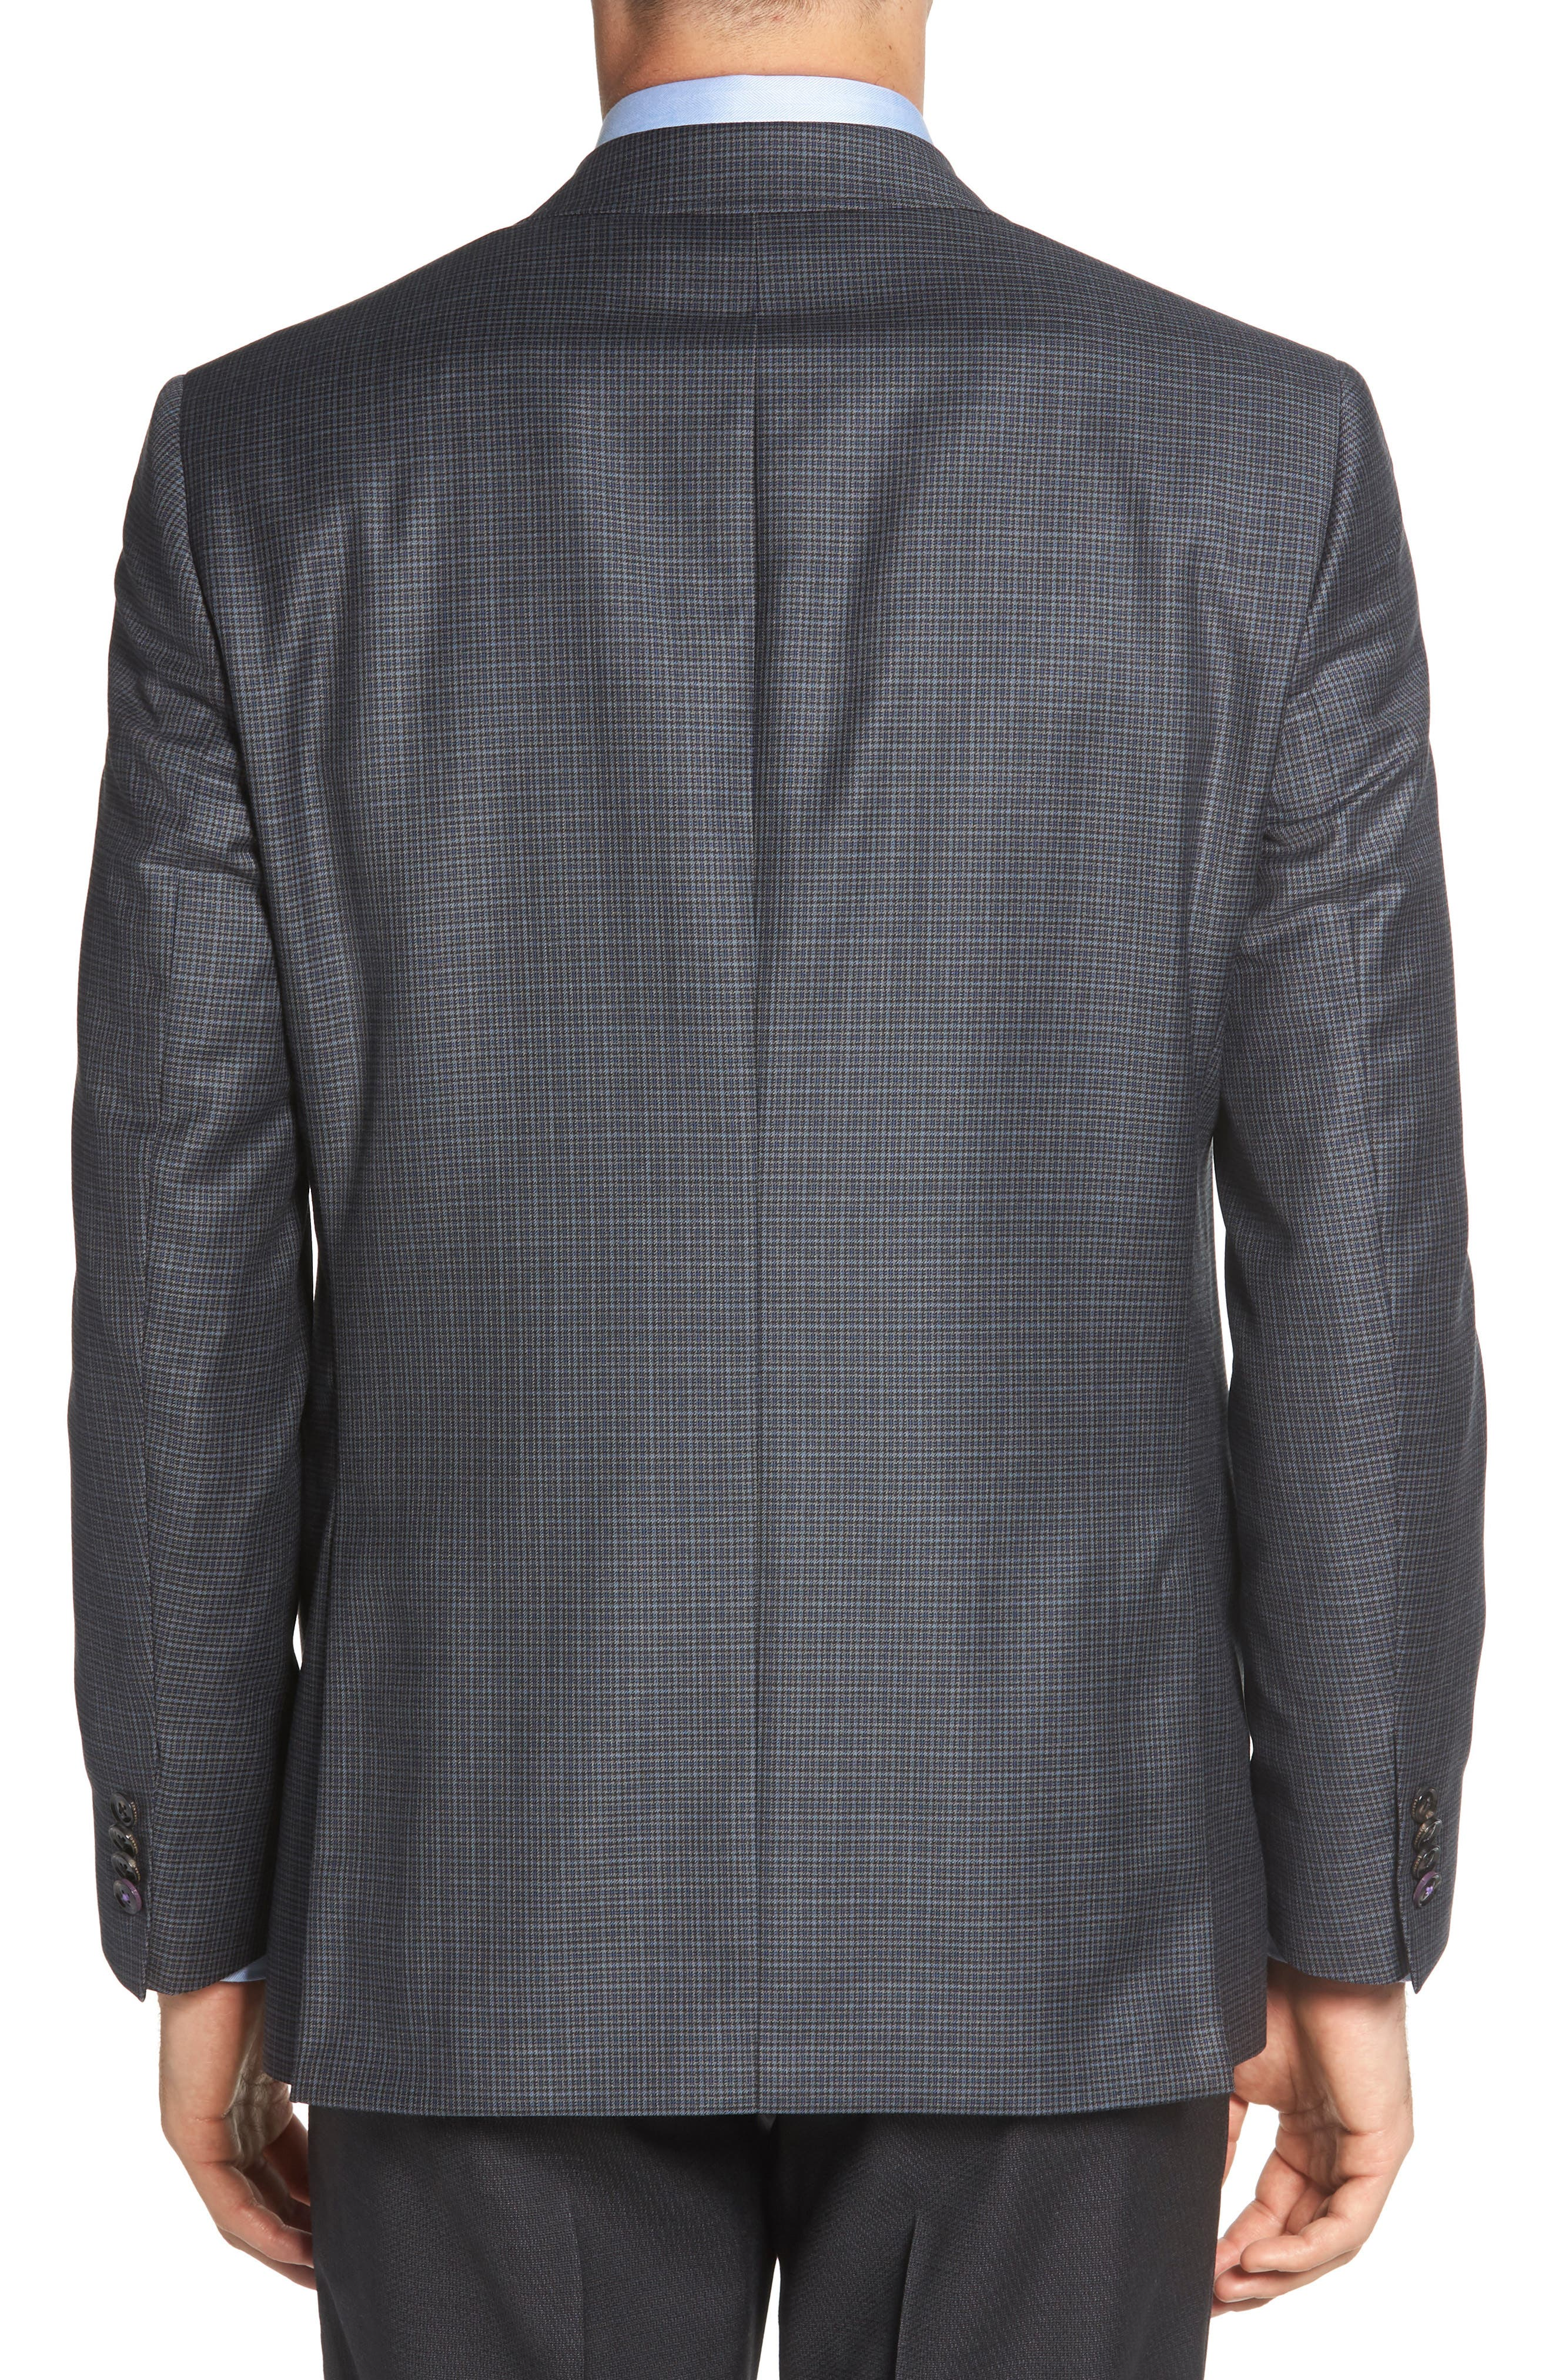 TED BAKER LONDON,                             Jed Trim Fit Microcheck Wool Sport Coat,                             Alternate thumbnail 2, color,                             020